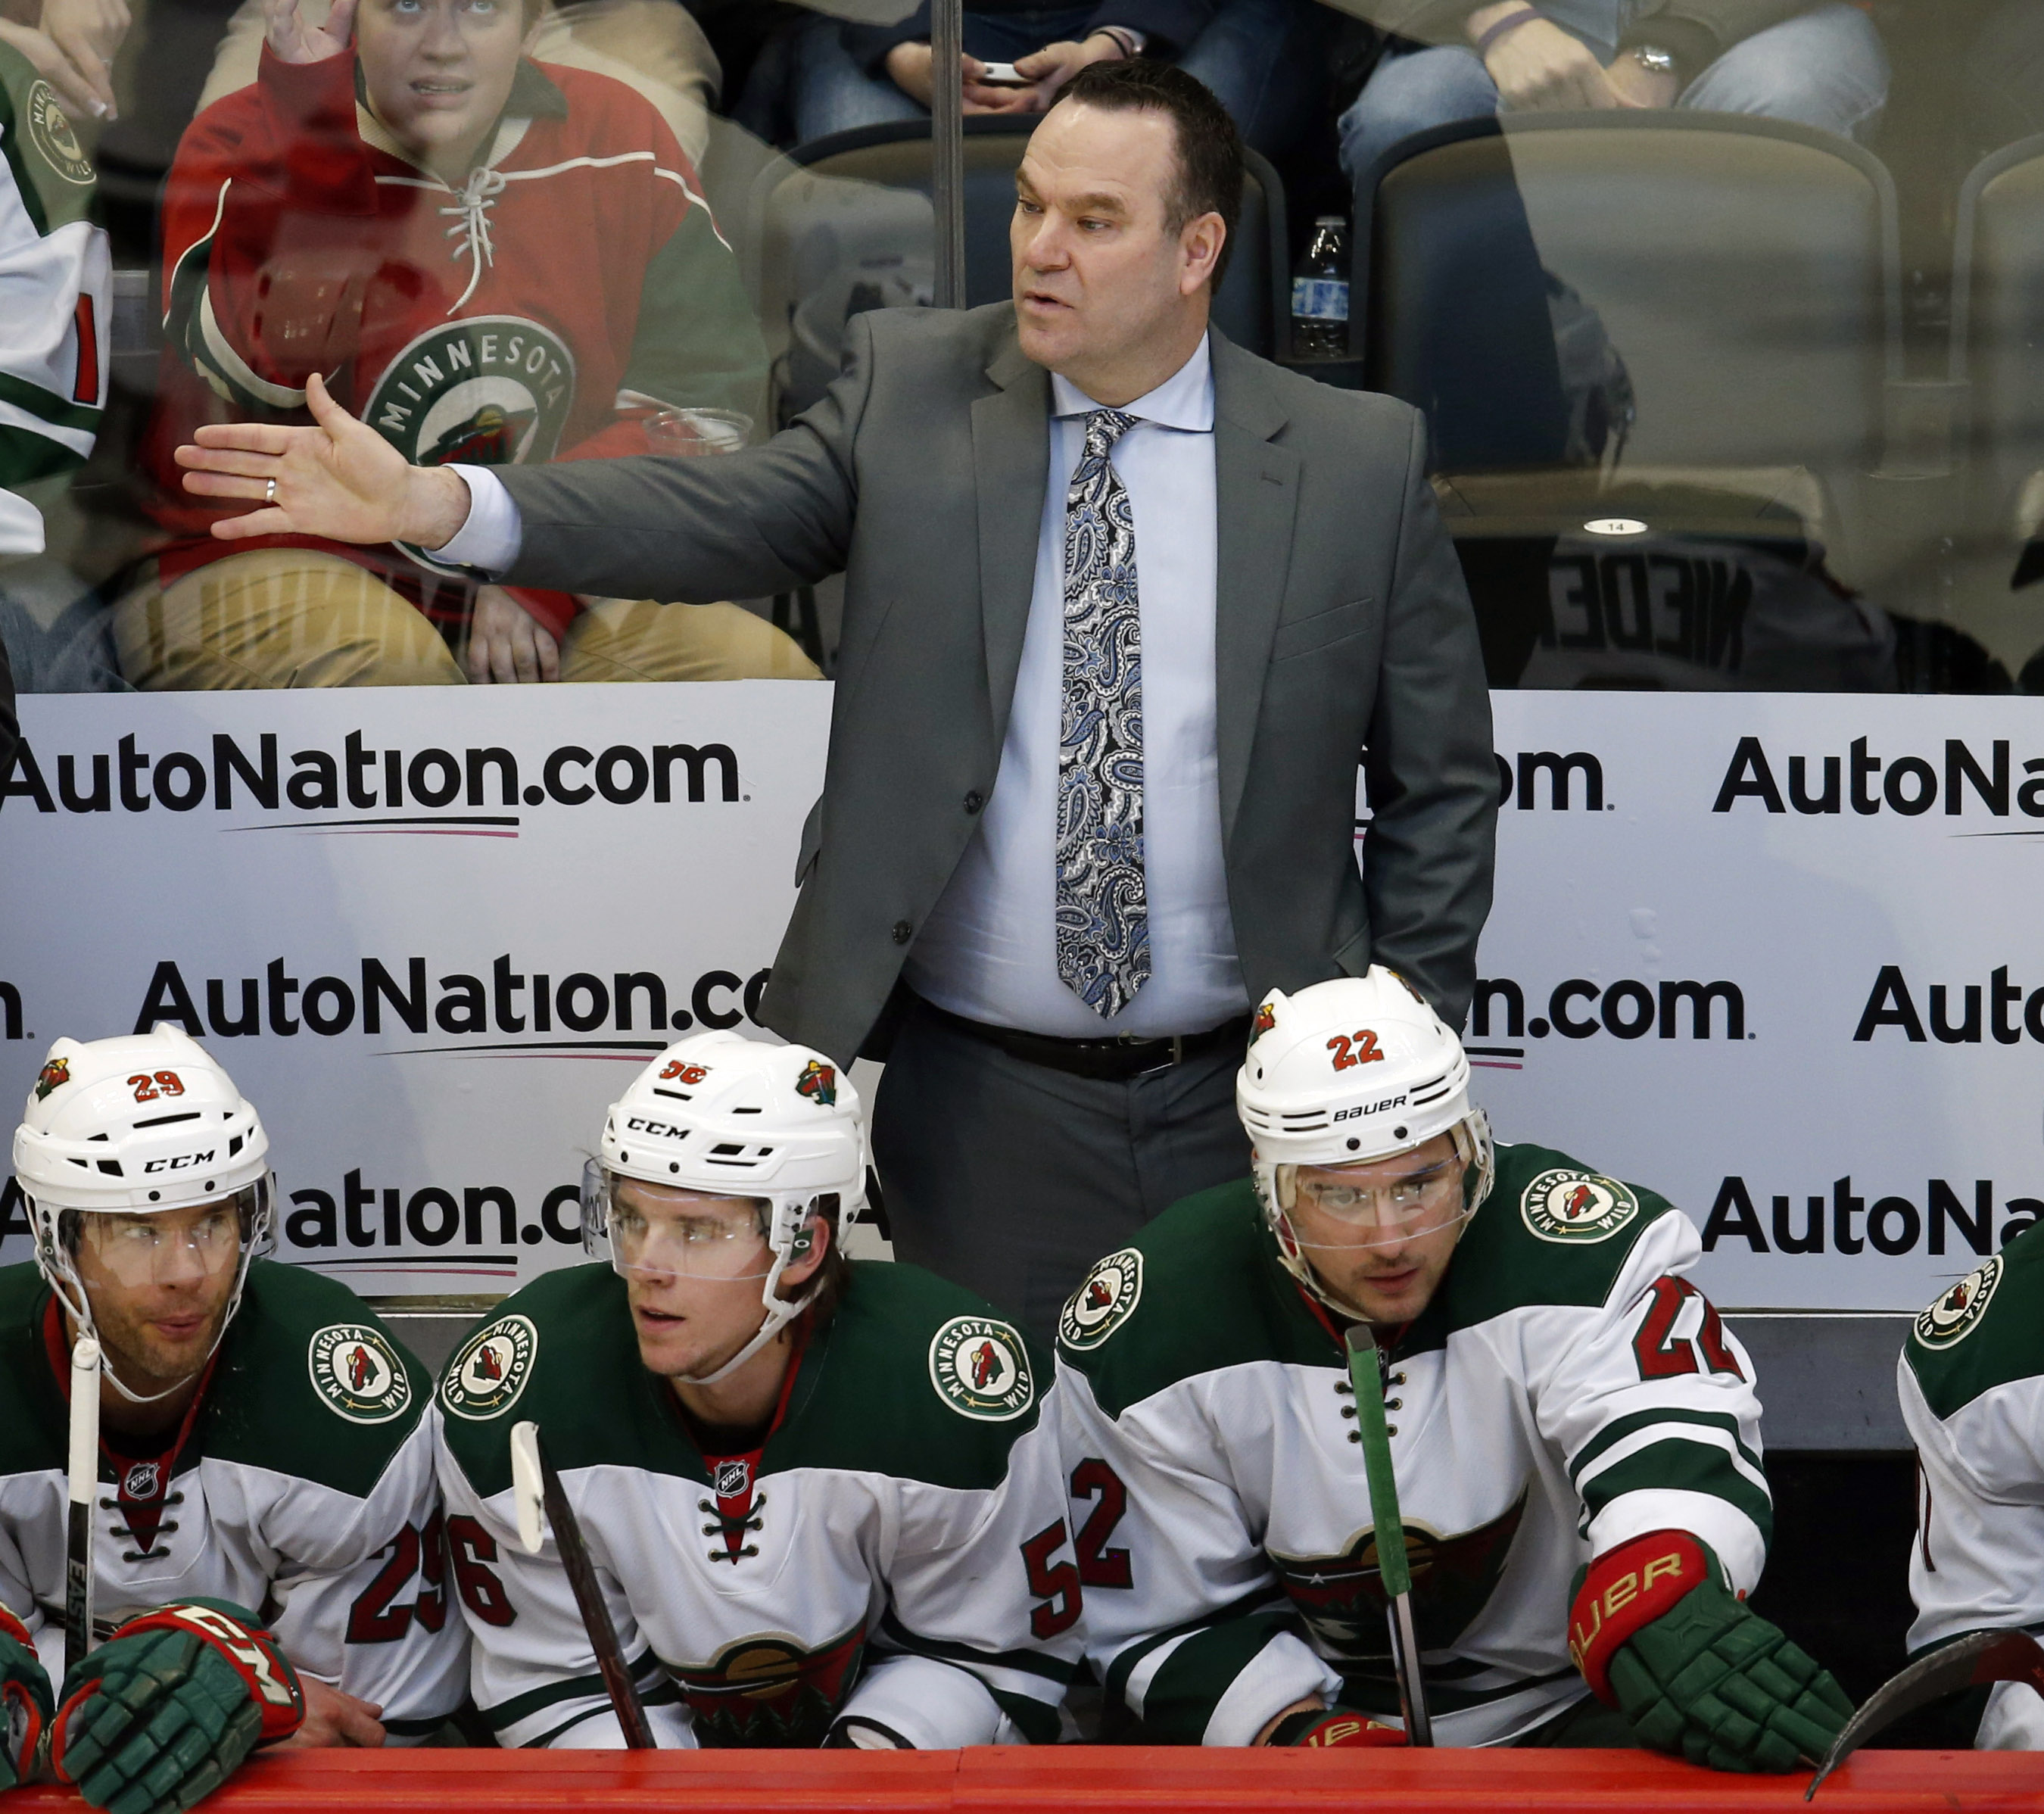 Minnesota Wild head coach John Torchetti directs his team against the Colorado Avalanche in the first period of an NHL hockey game Saturday, March 26, 2016, in Denver. (AP Photo/David Zalubowski)